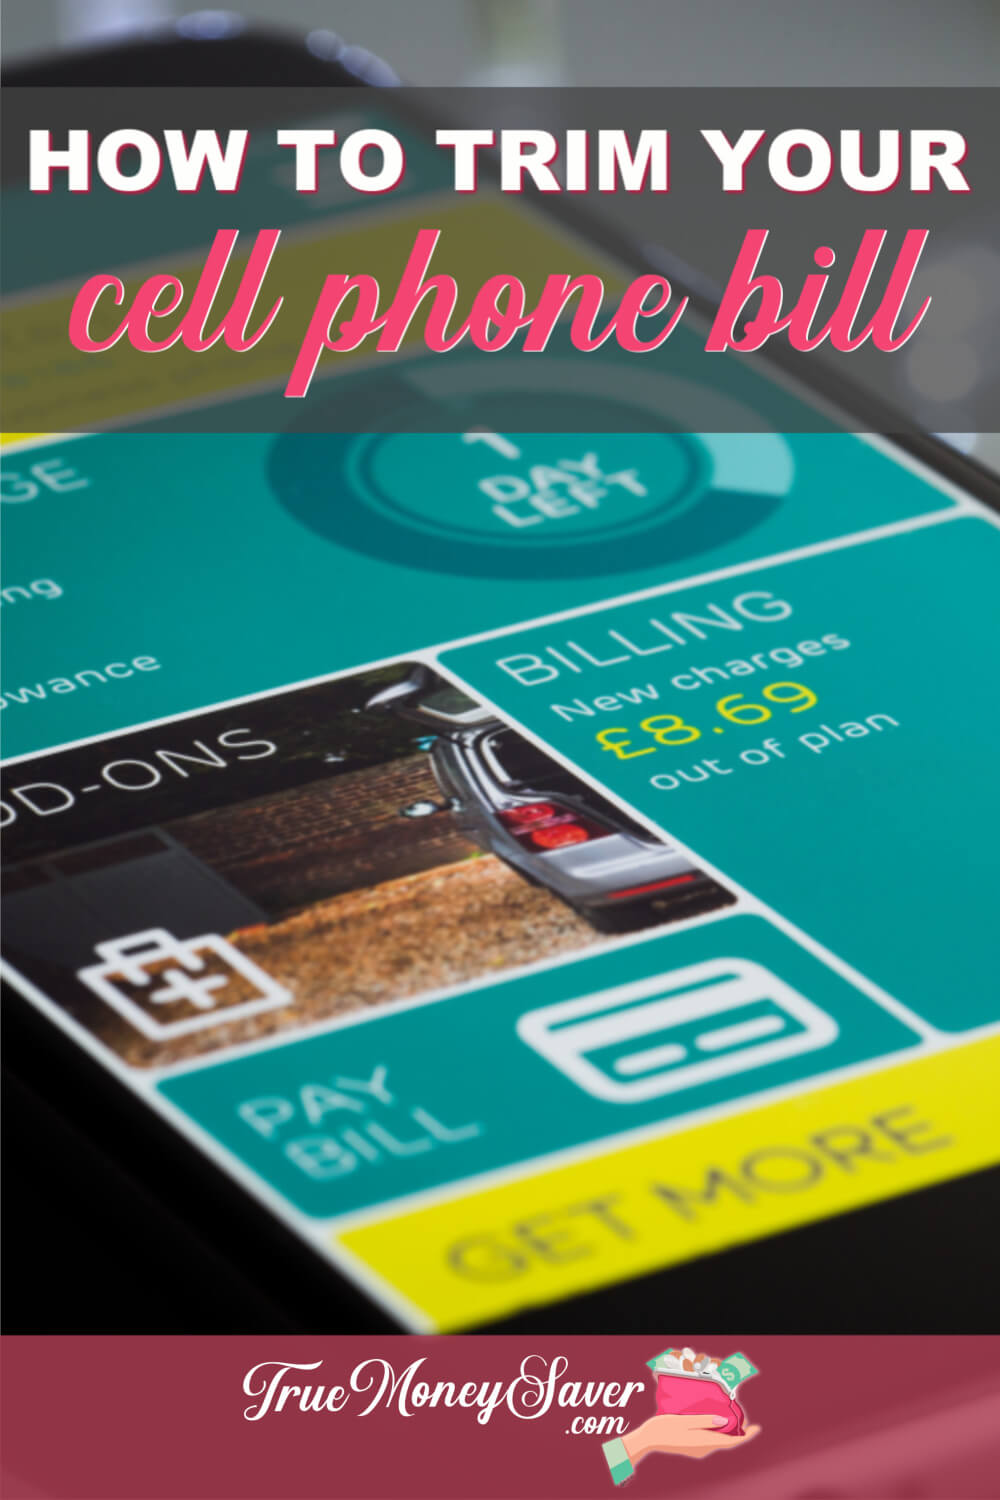 trim your cell phone bill